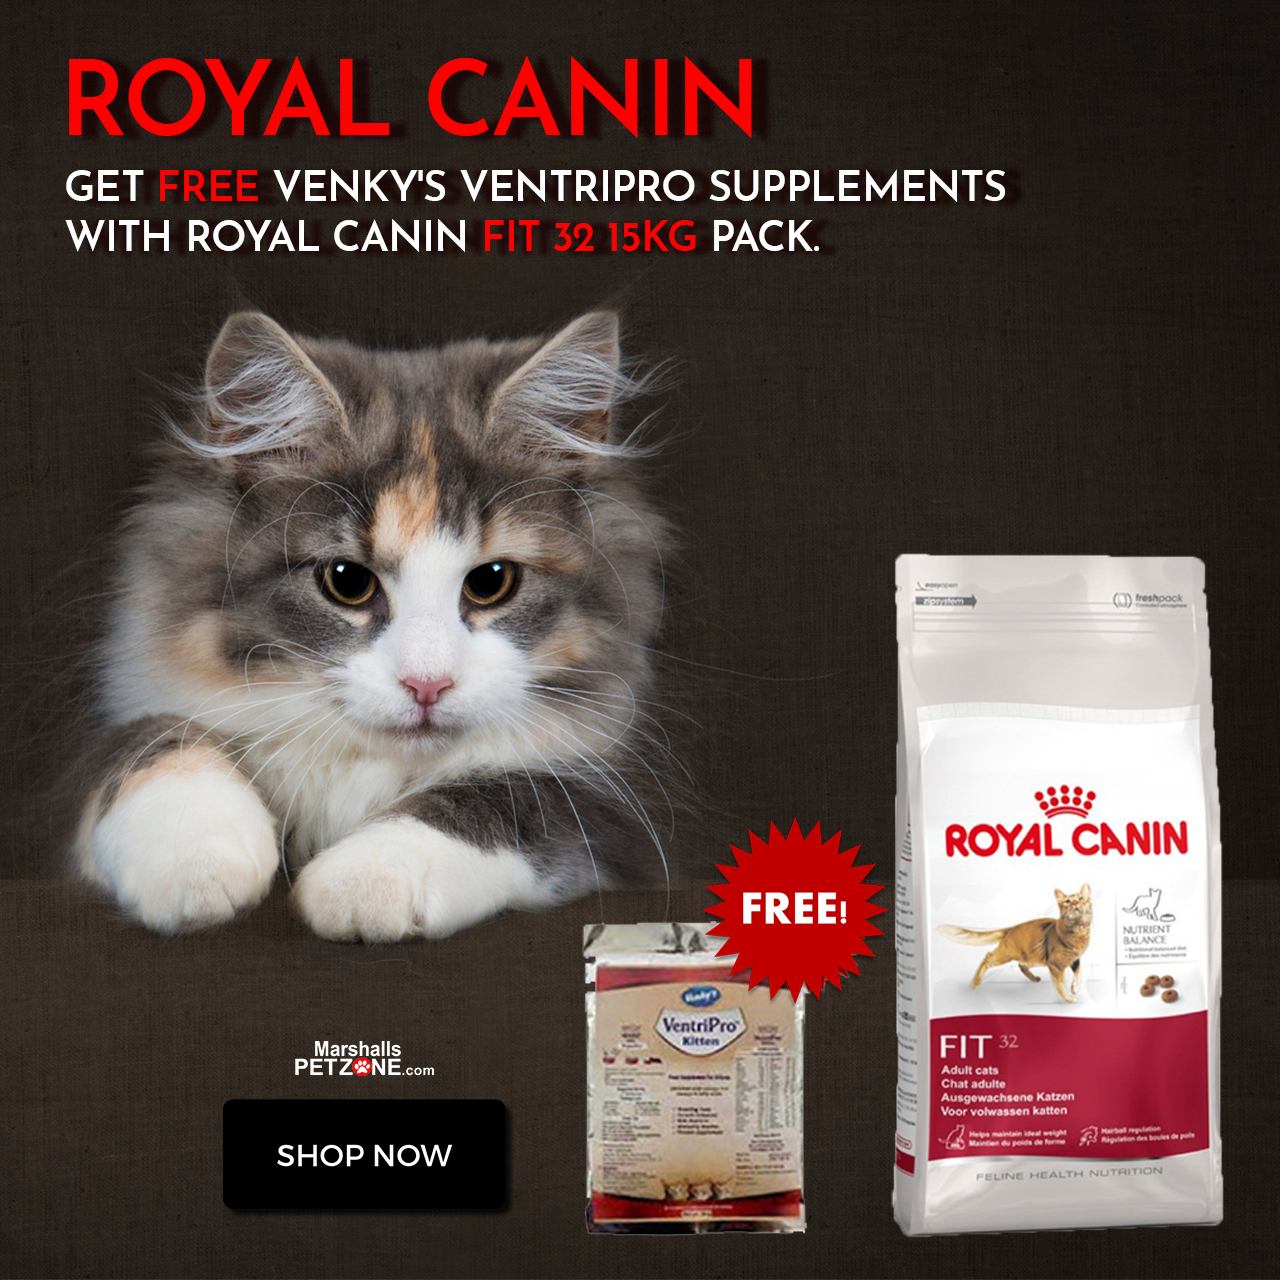 Royal Canin Fit 32 15kg Adult Cat Food At Lowest Price Weight 15 Kg Royal Canin Fitness Cats